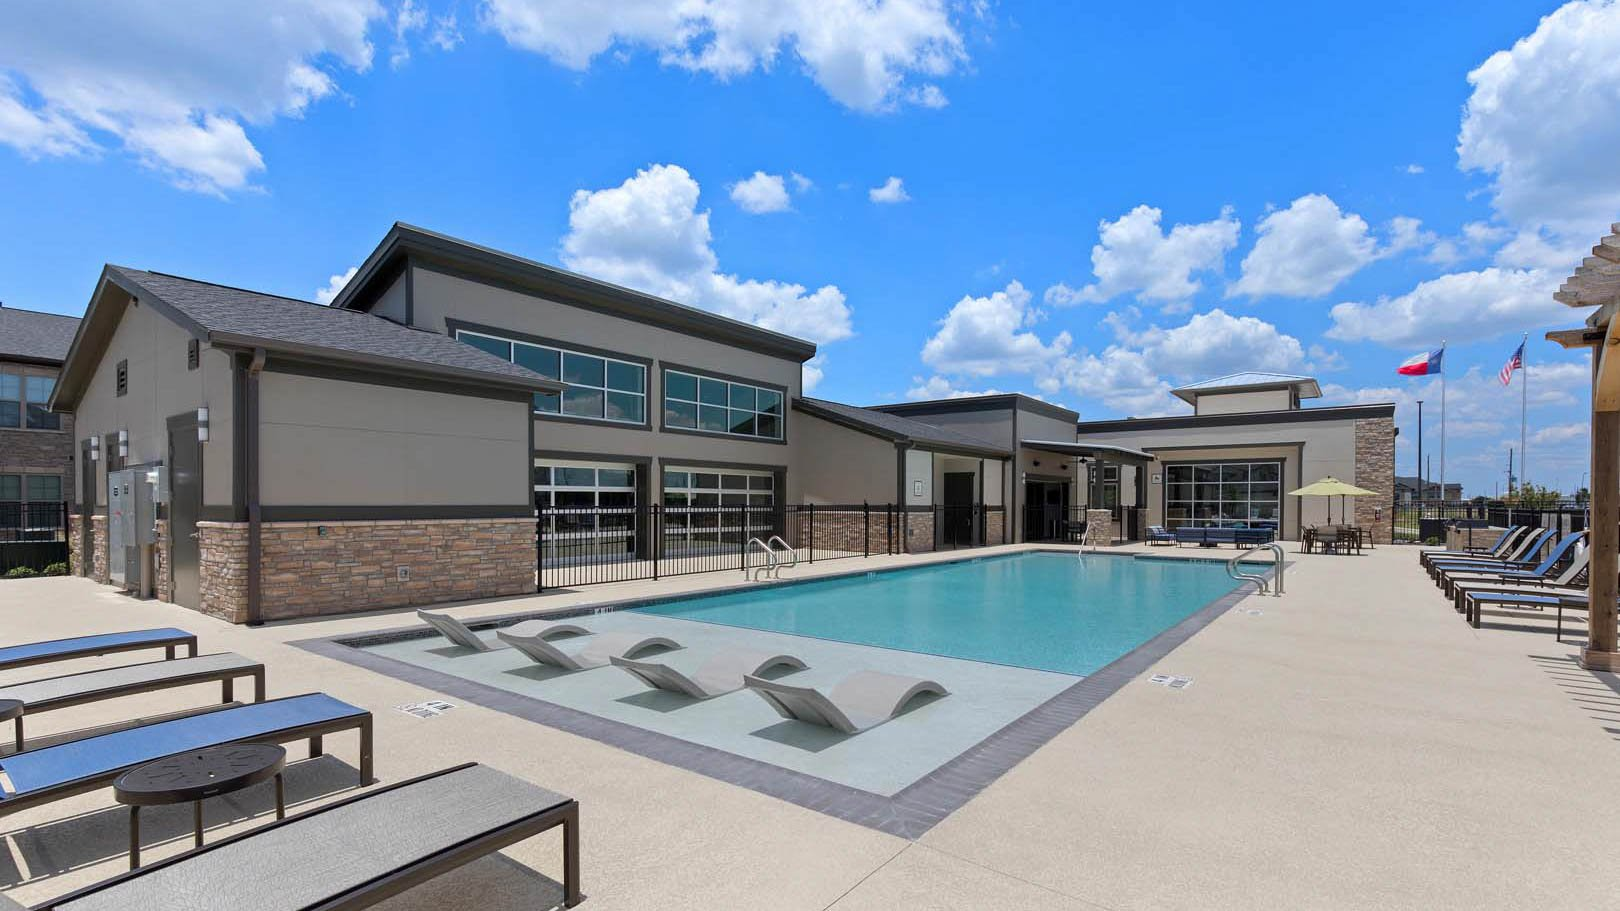 Pool and clubhouse in Rosenberg, TX